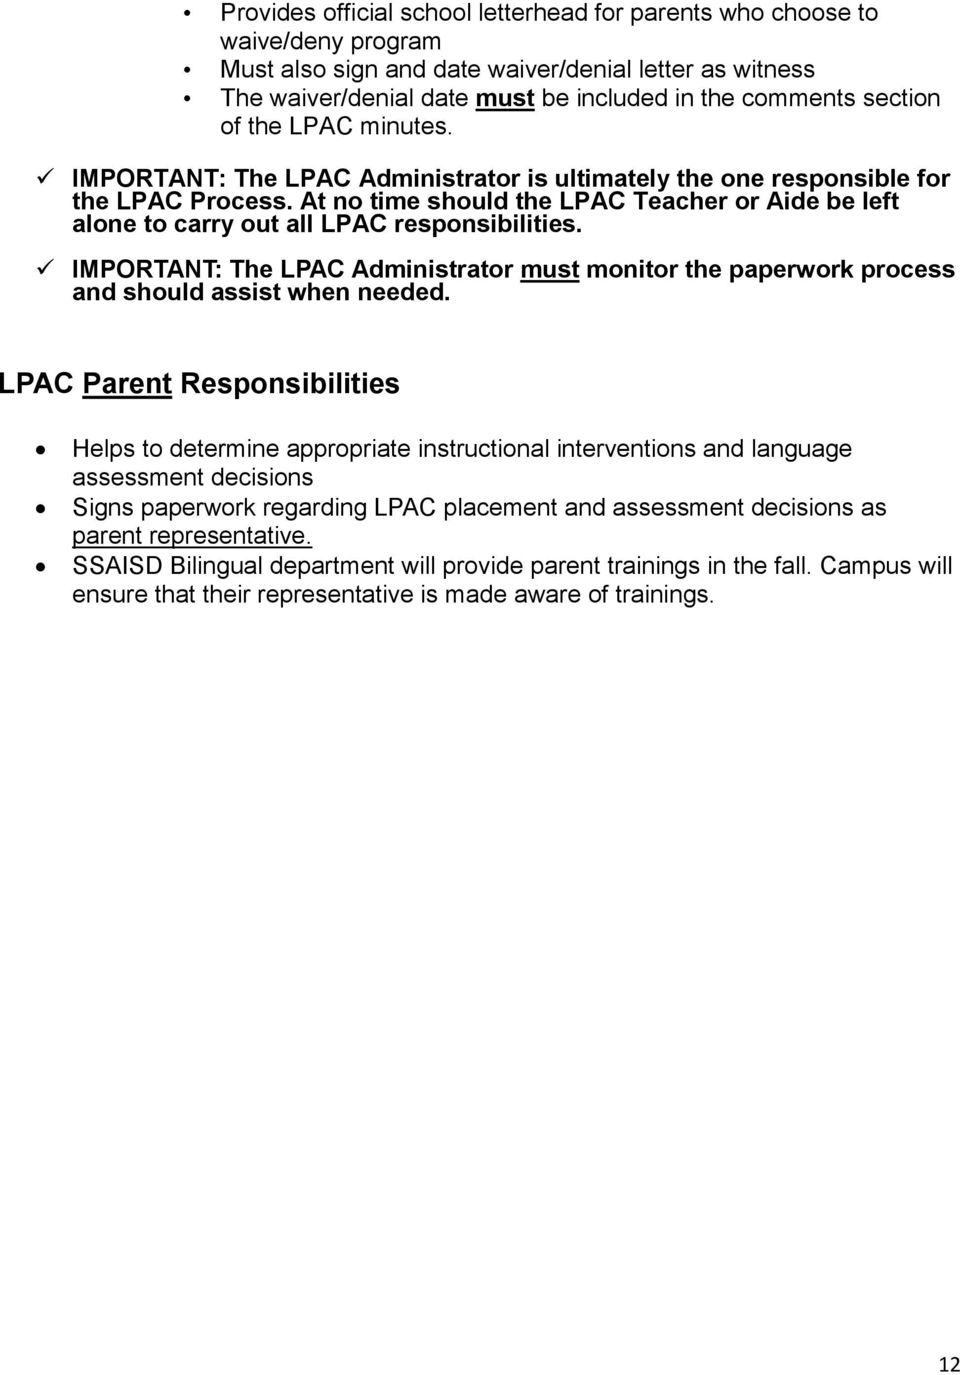 At no time should the LPAC Teacher or Aide be left alone to carry out all LPAC responsibilities. IMPORTANT: The LPAC Administrator must monitor the paperwork process and should assist when needed.